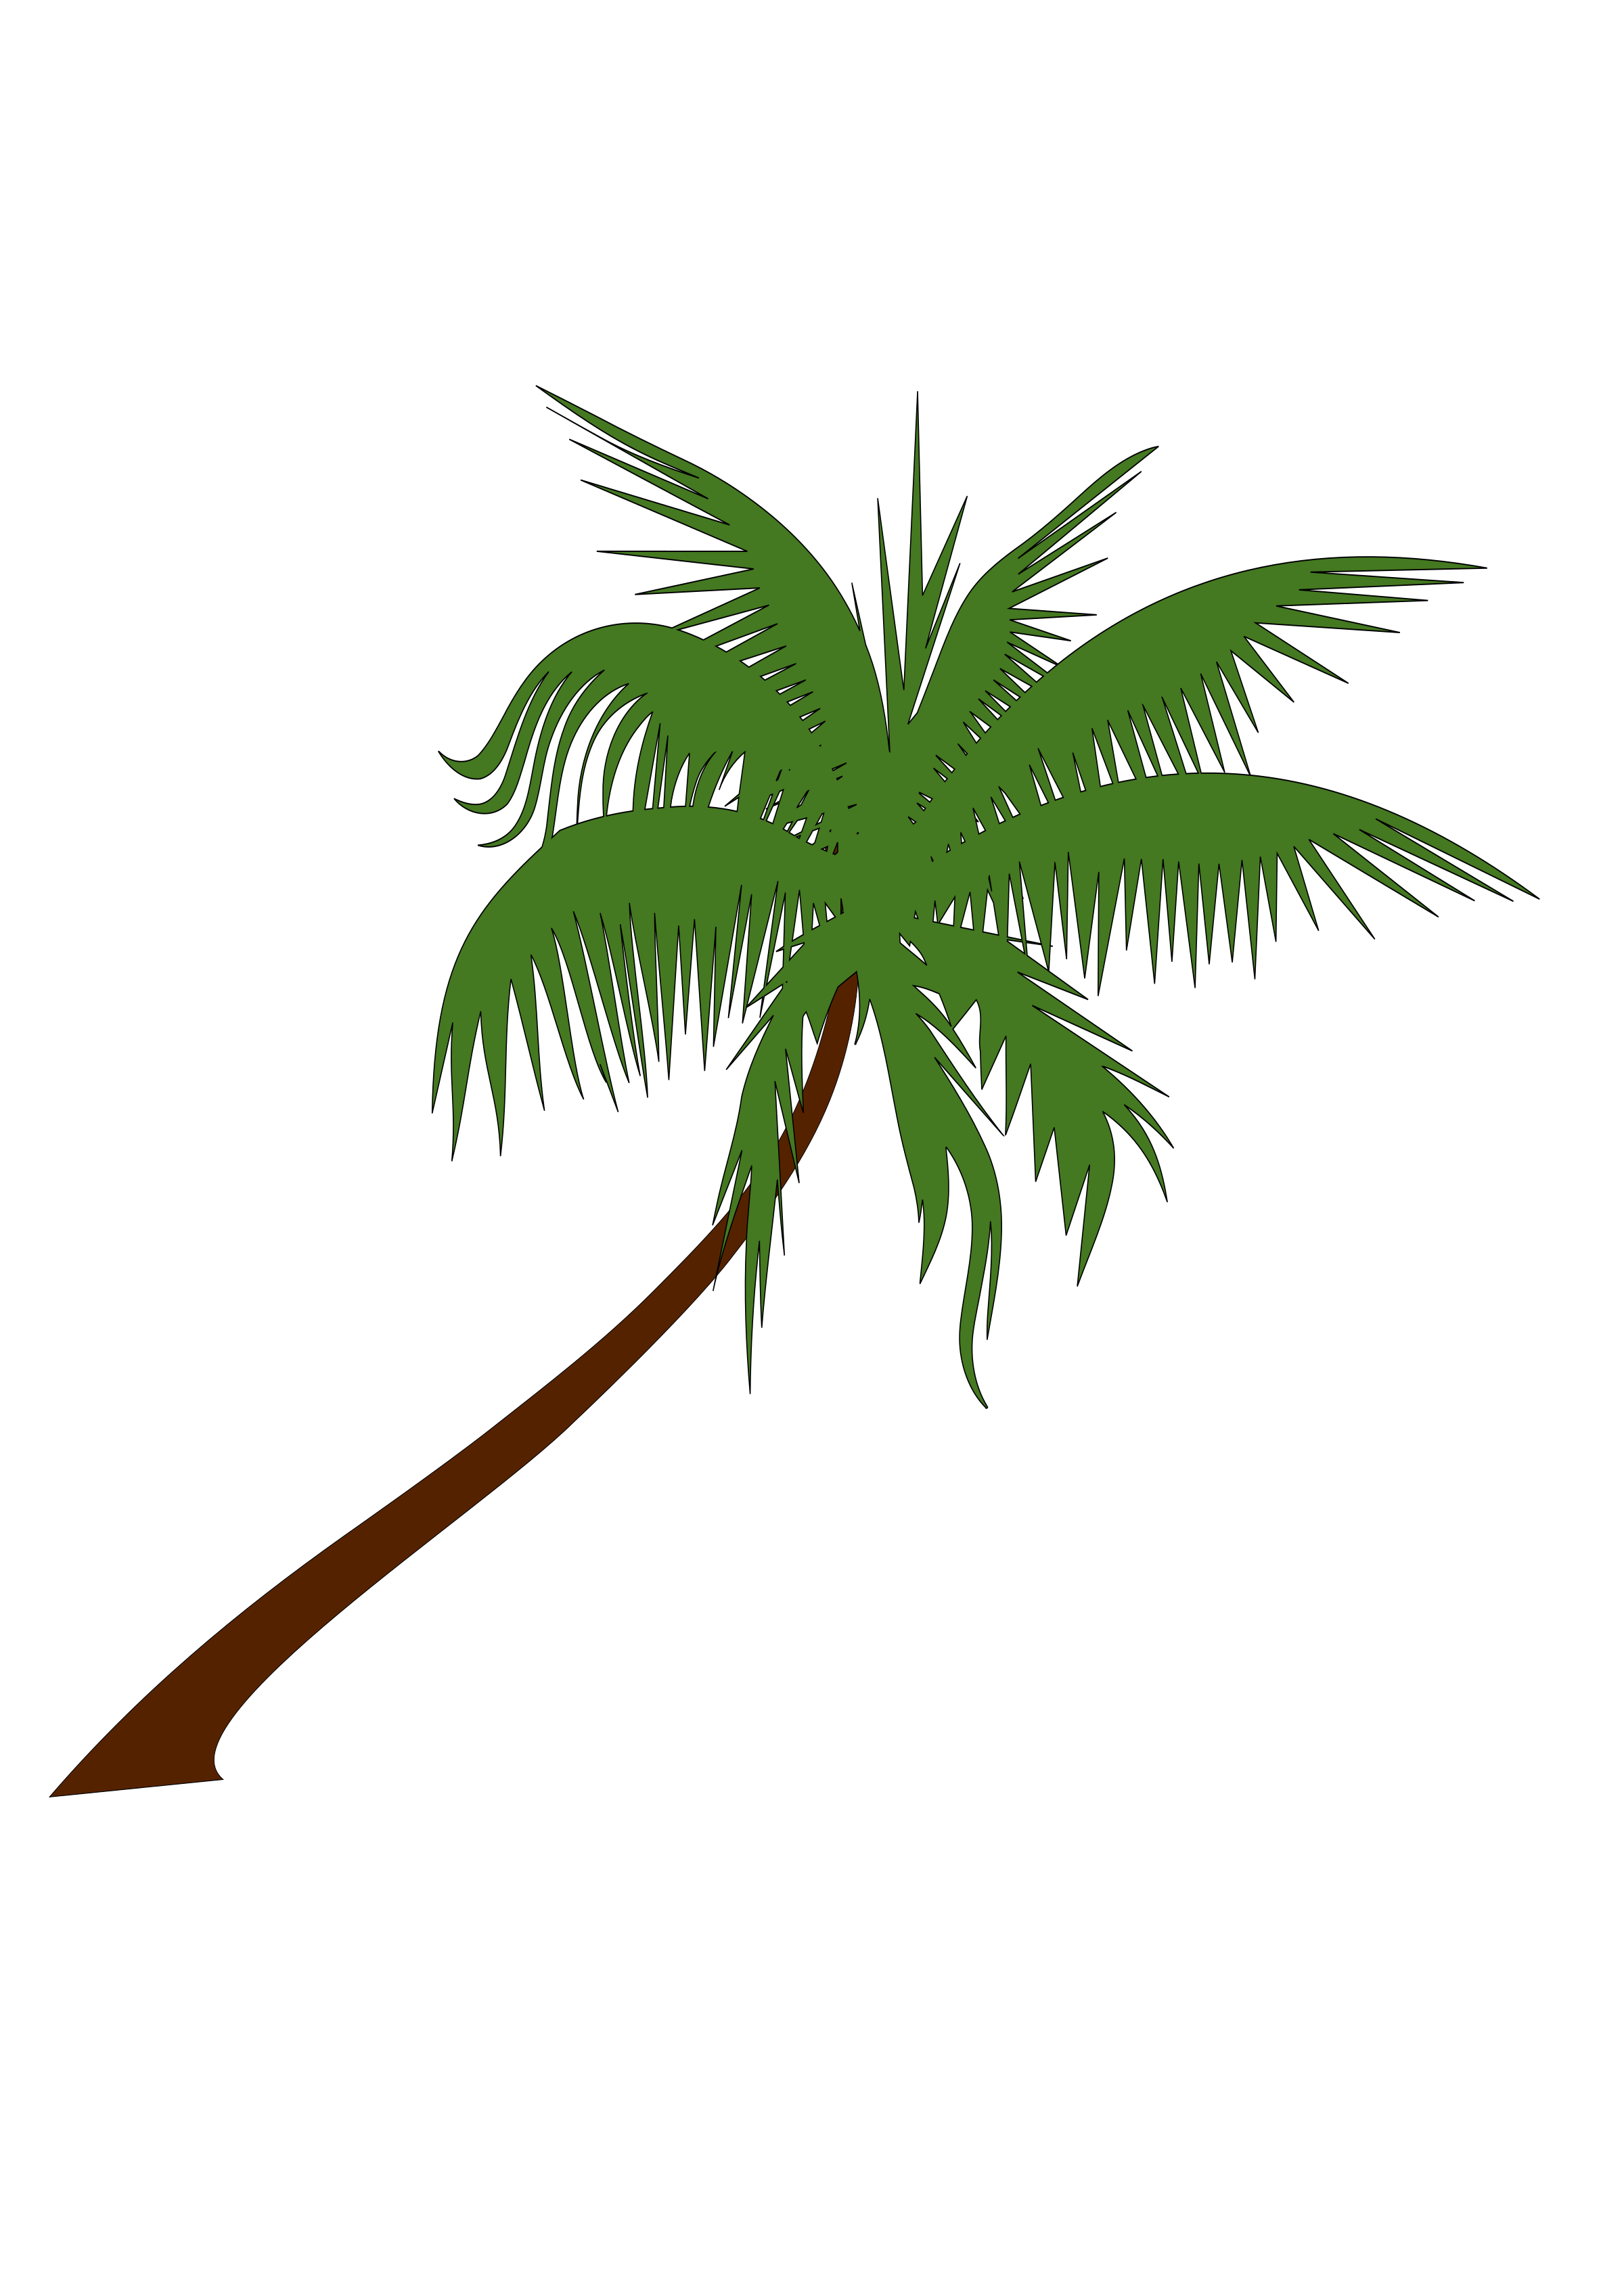 10 Coconut Tree Png Frees That You Can Download To clipart